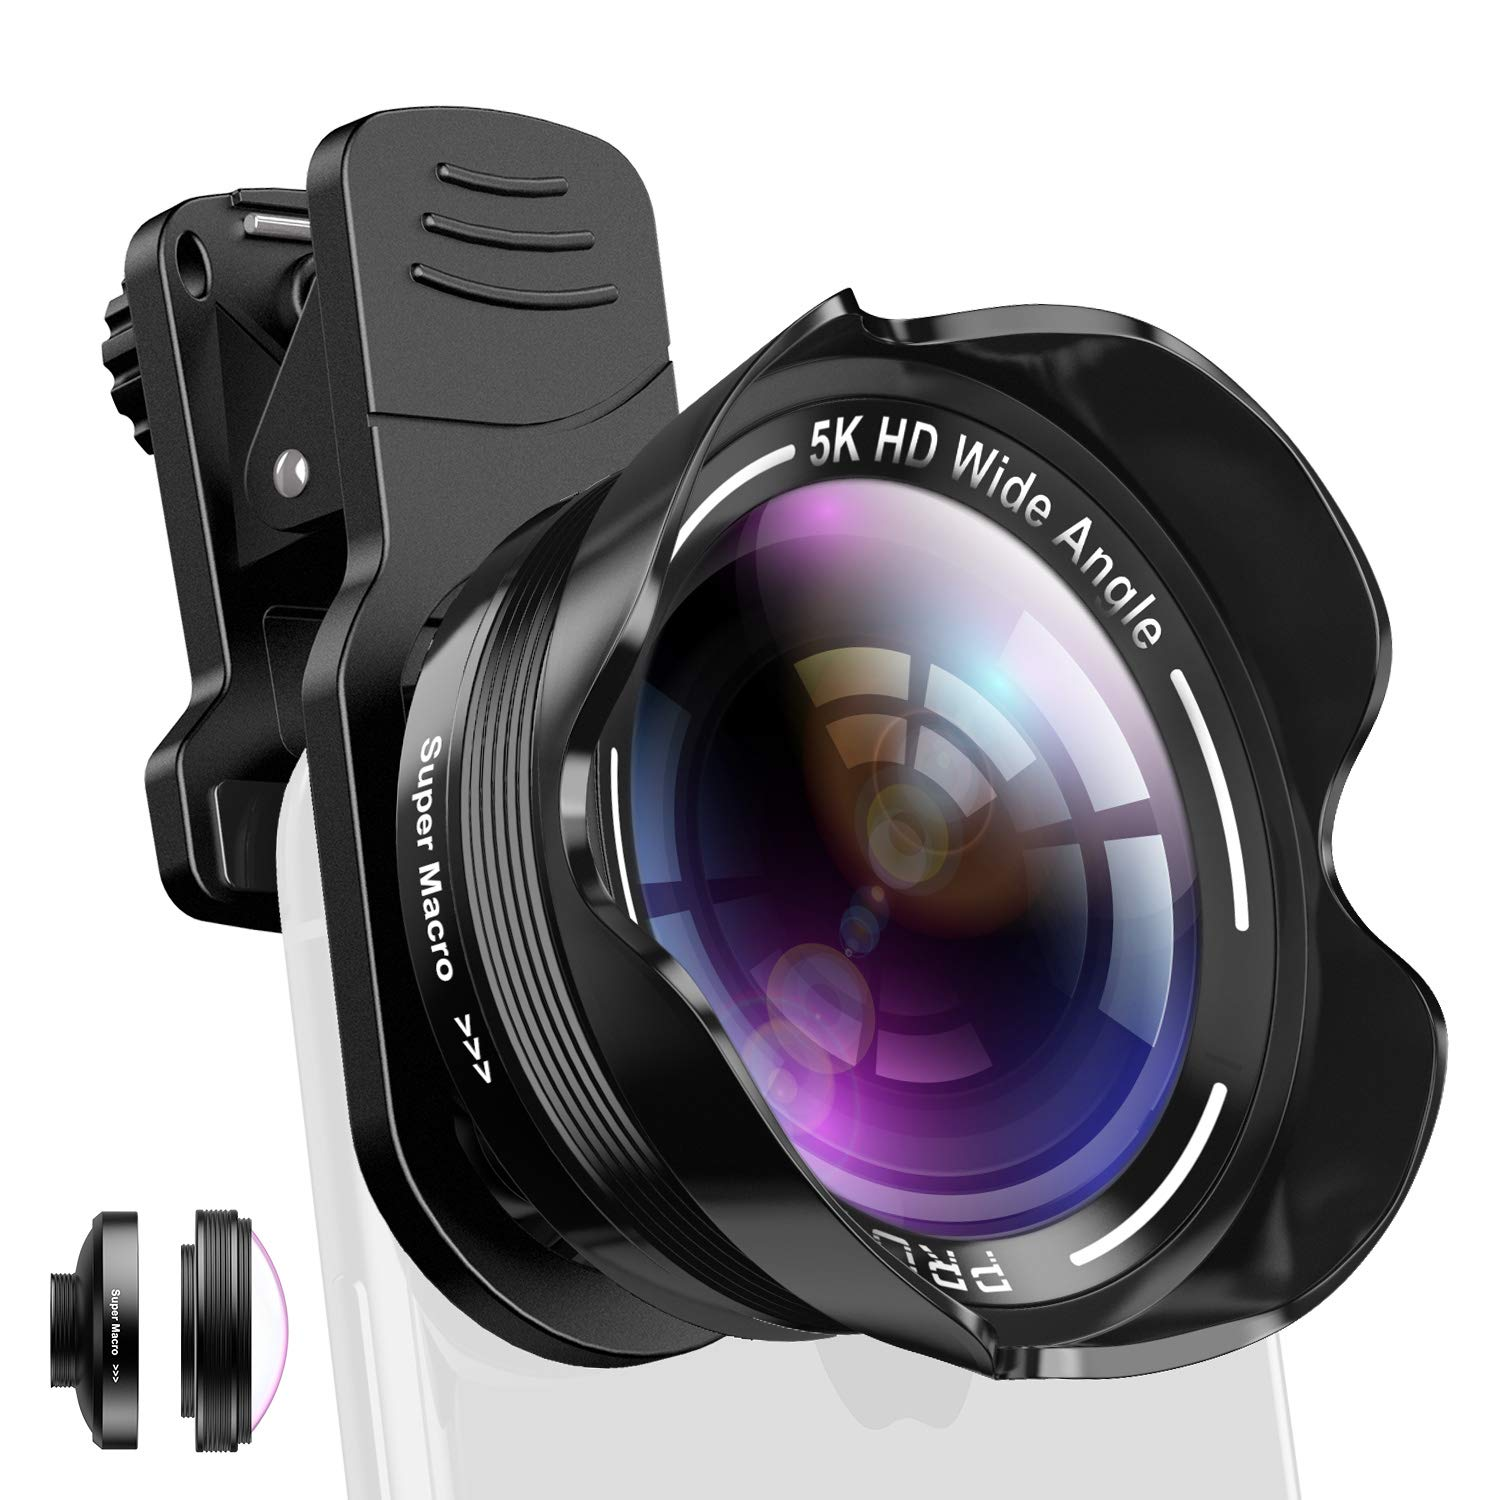 Phone Camera Lens Kit 2 in 1 Pro Camera Lens Kit 15X Macro 5K HD 0.56X Wide Angle for iPhone X XR XS Max 8 7 6S Plus Samsung with Bag and Travel Case by SUFEINI